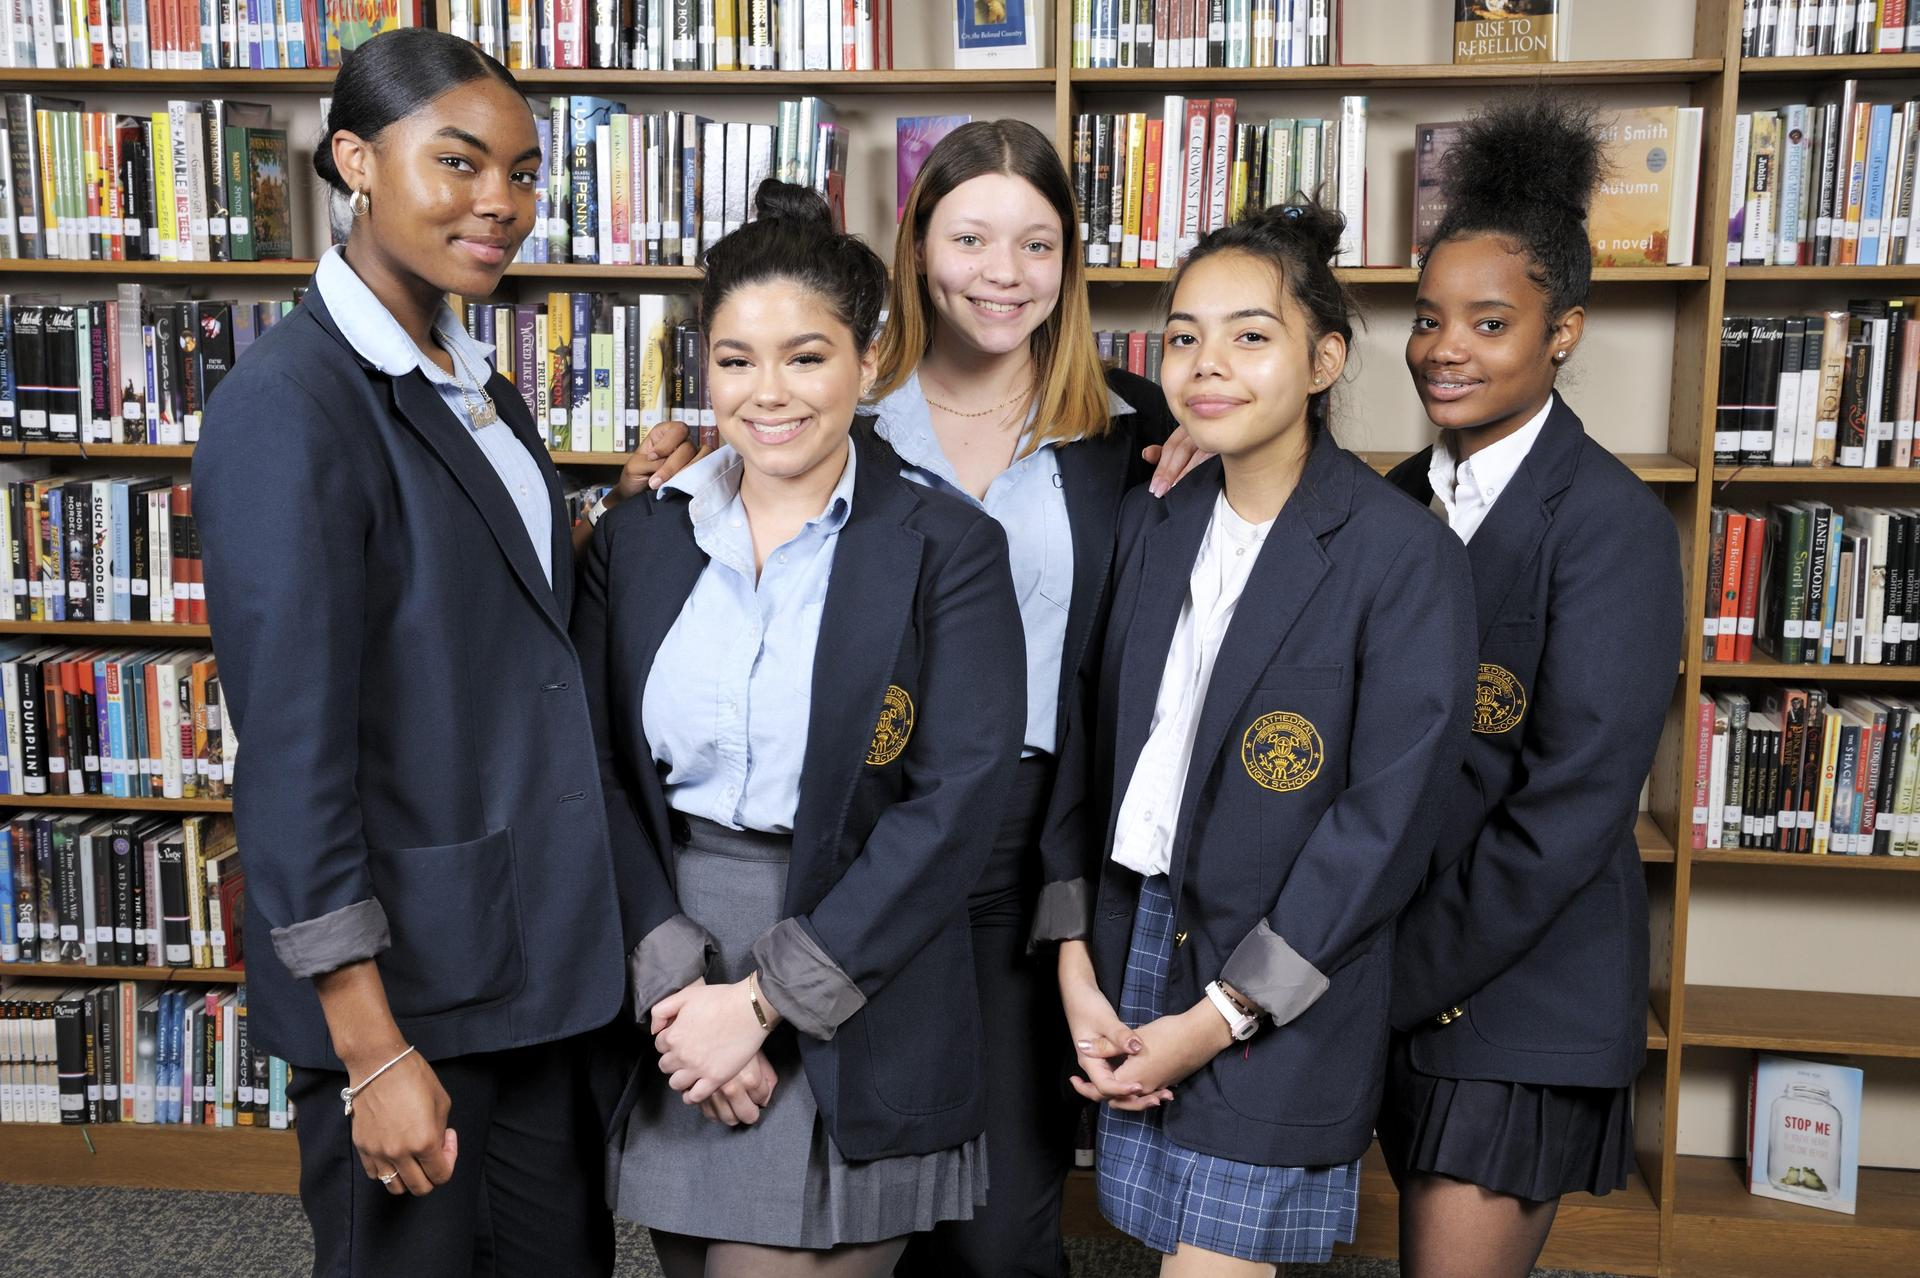 Students at Cathedral High School